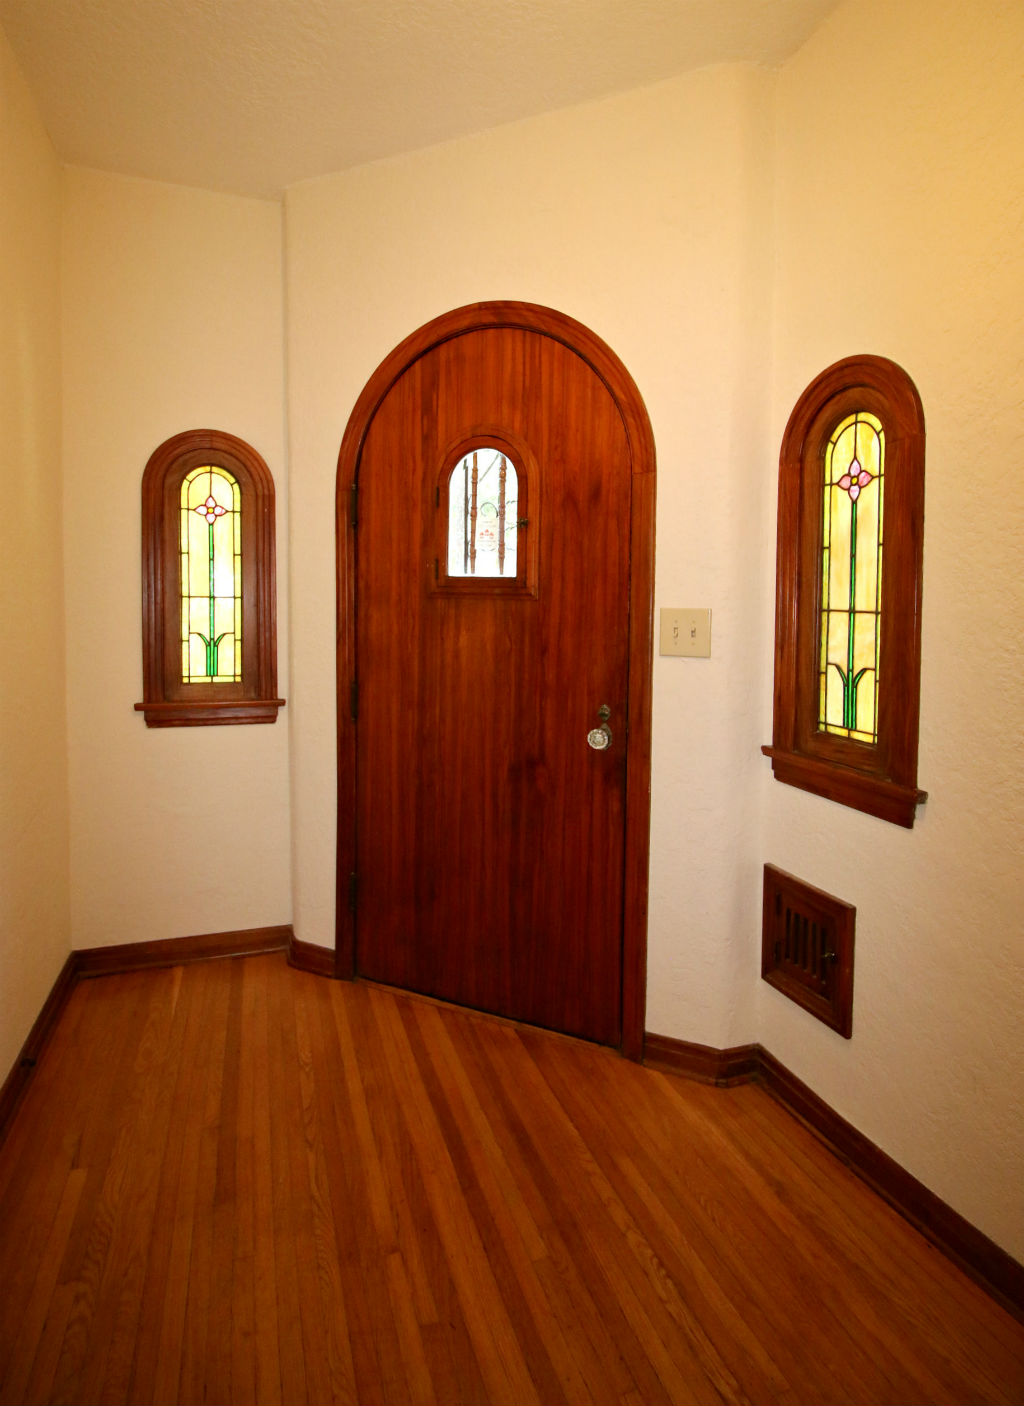 Entry door flanked by stained glass windows and mail slot.